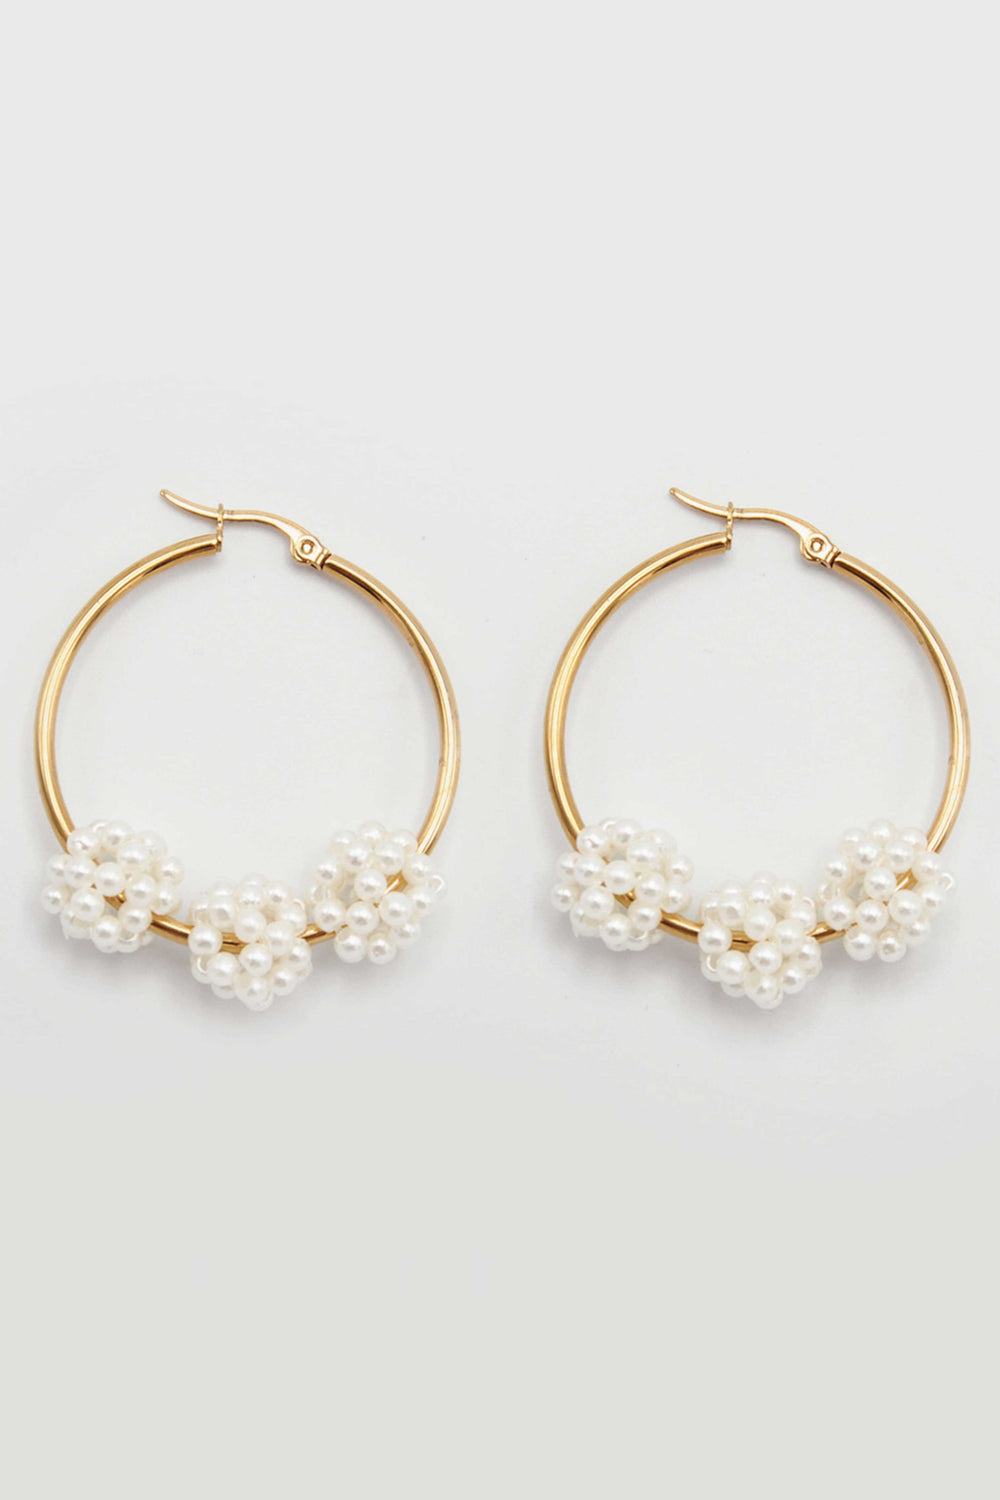 DAY DREAMING EARRINGS | Women's Online Shopping | CHICLEFRIQUE  (4390941098073)